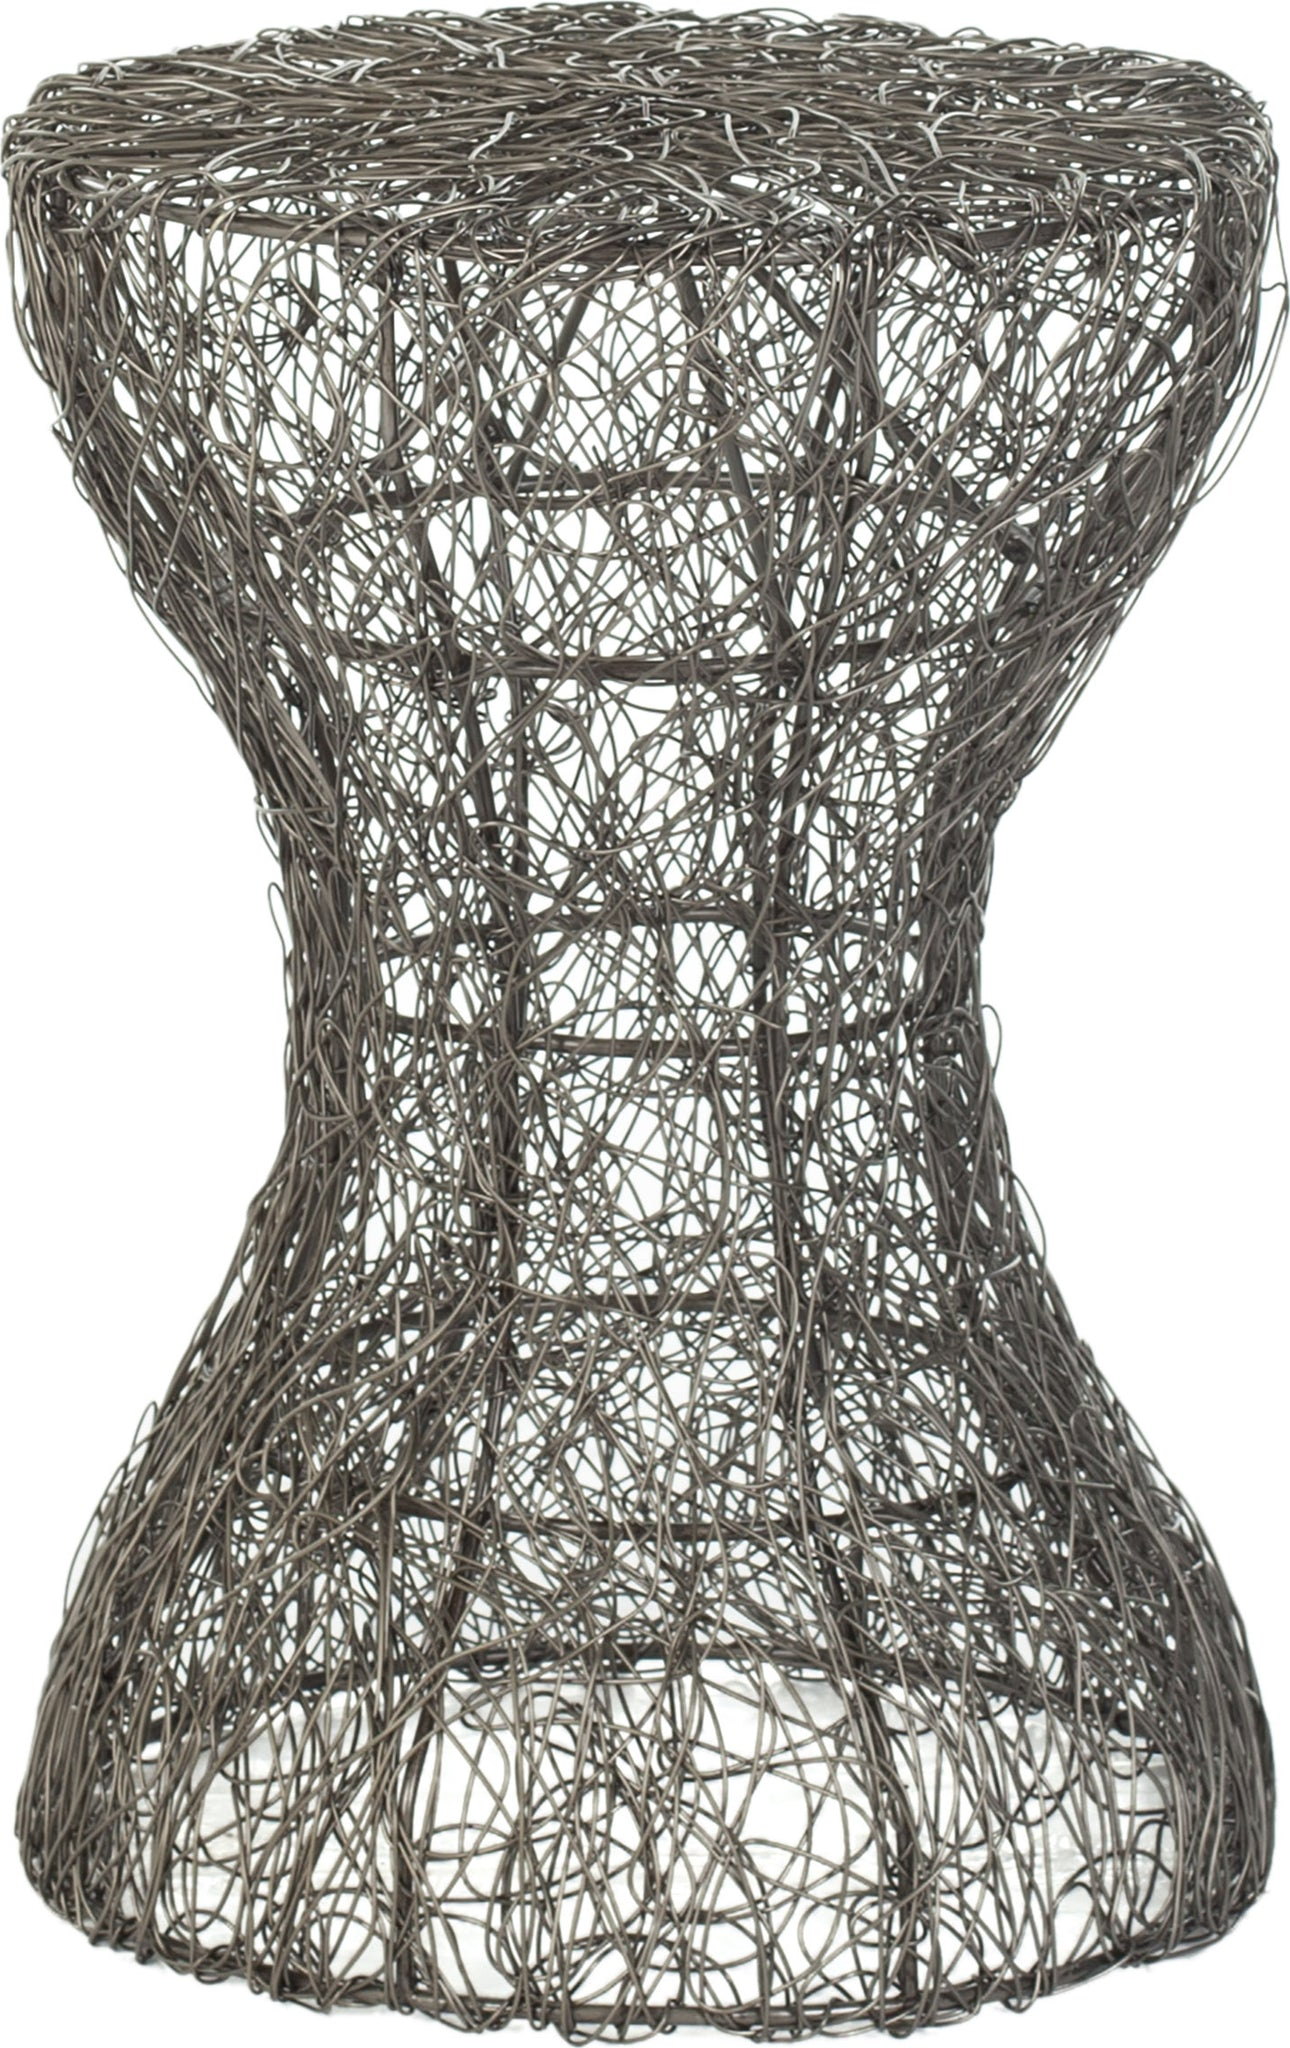 Safavieh Zig Zag Woven Wire Stool Antique Zinc Furniture main image